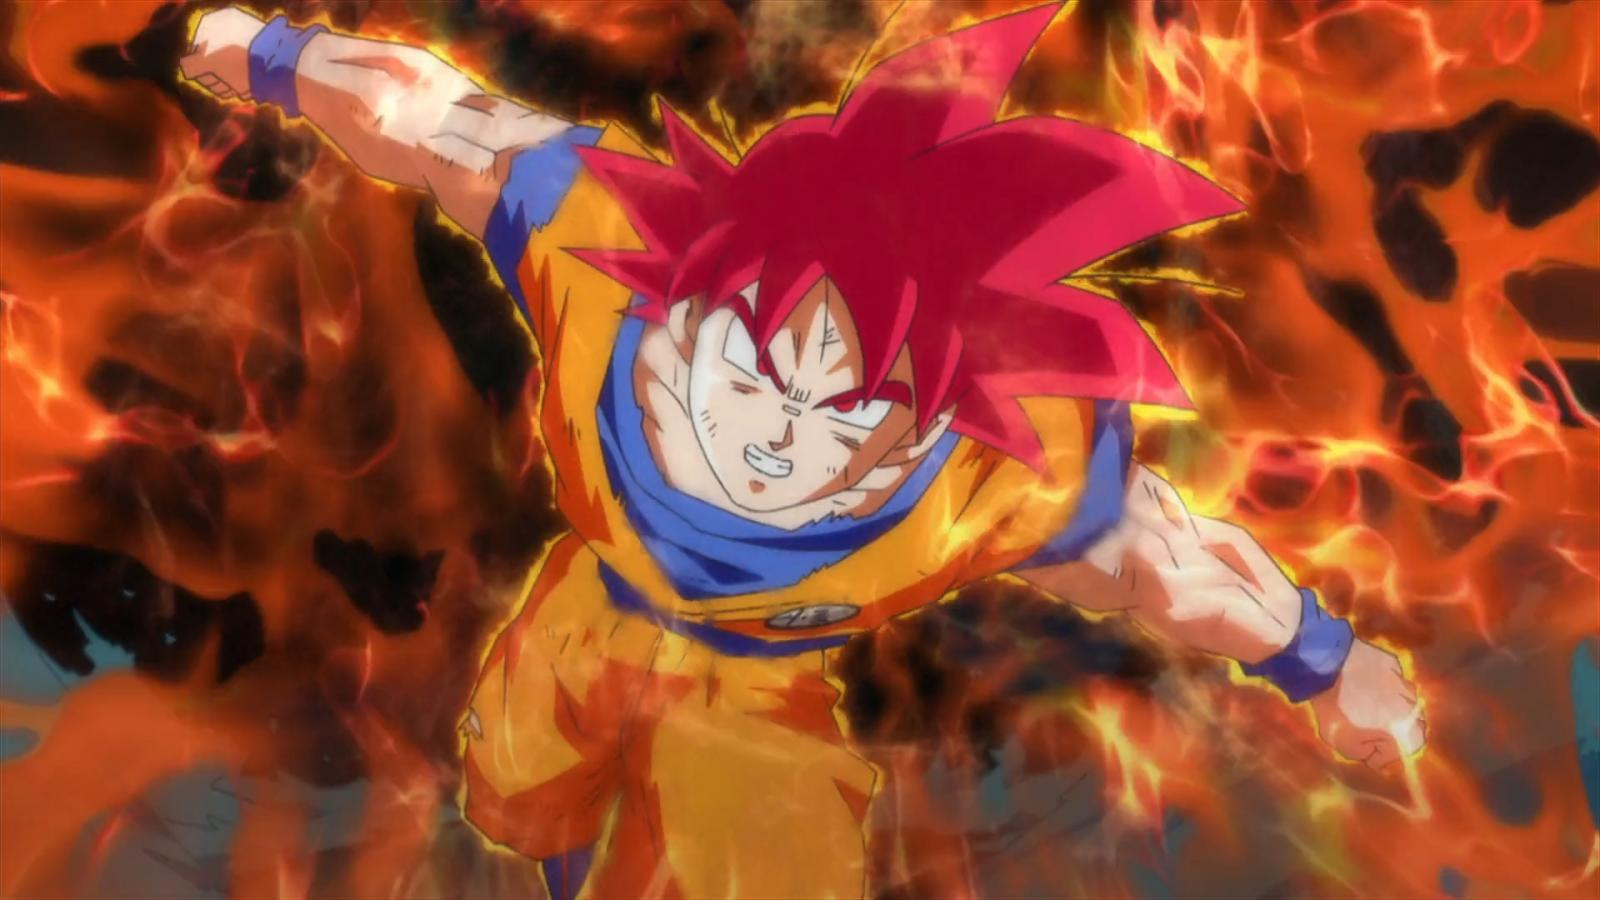 Son goku super saiyan god dragon ball z battle of gods - Dragon ball super background music mp3 download ...